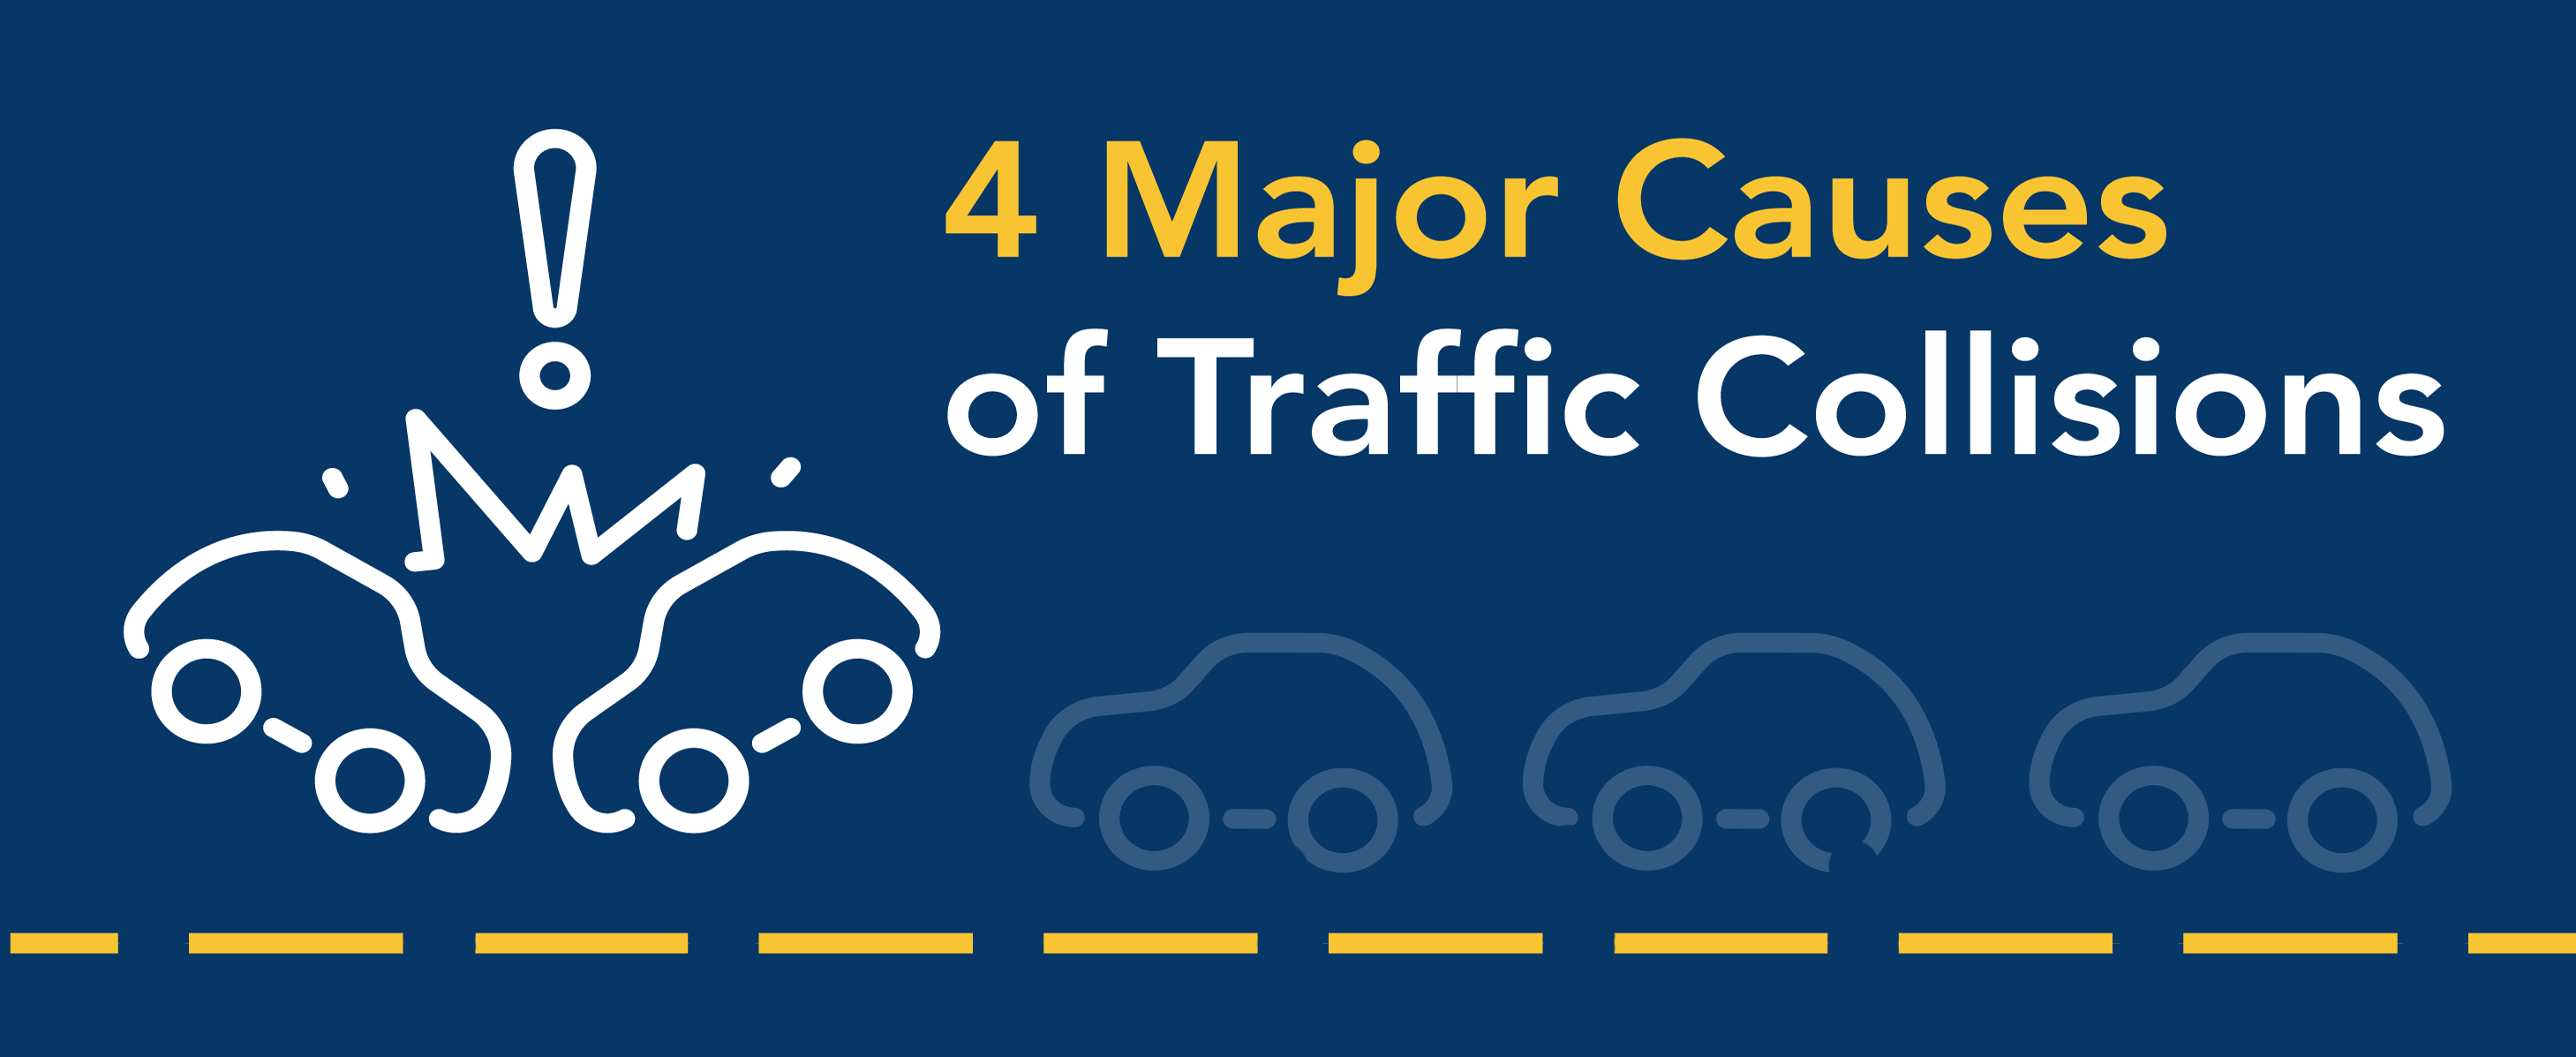 4 major causes of traffic collisions.